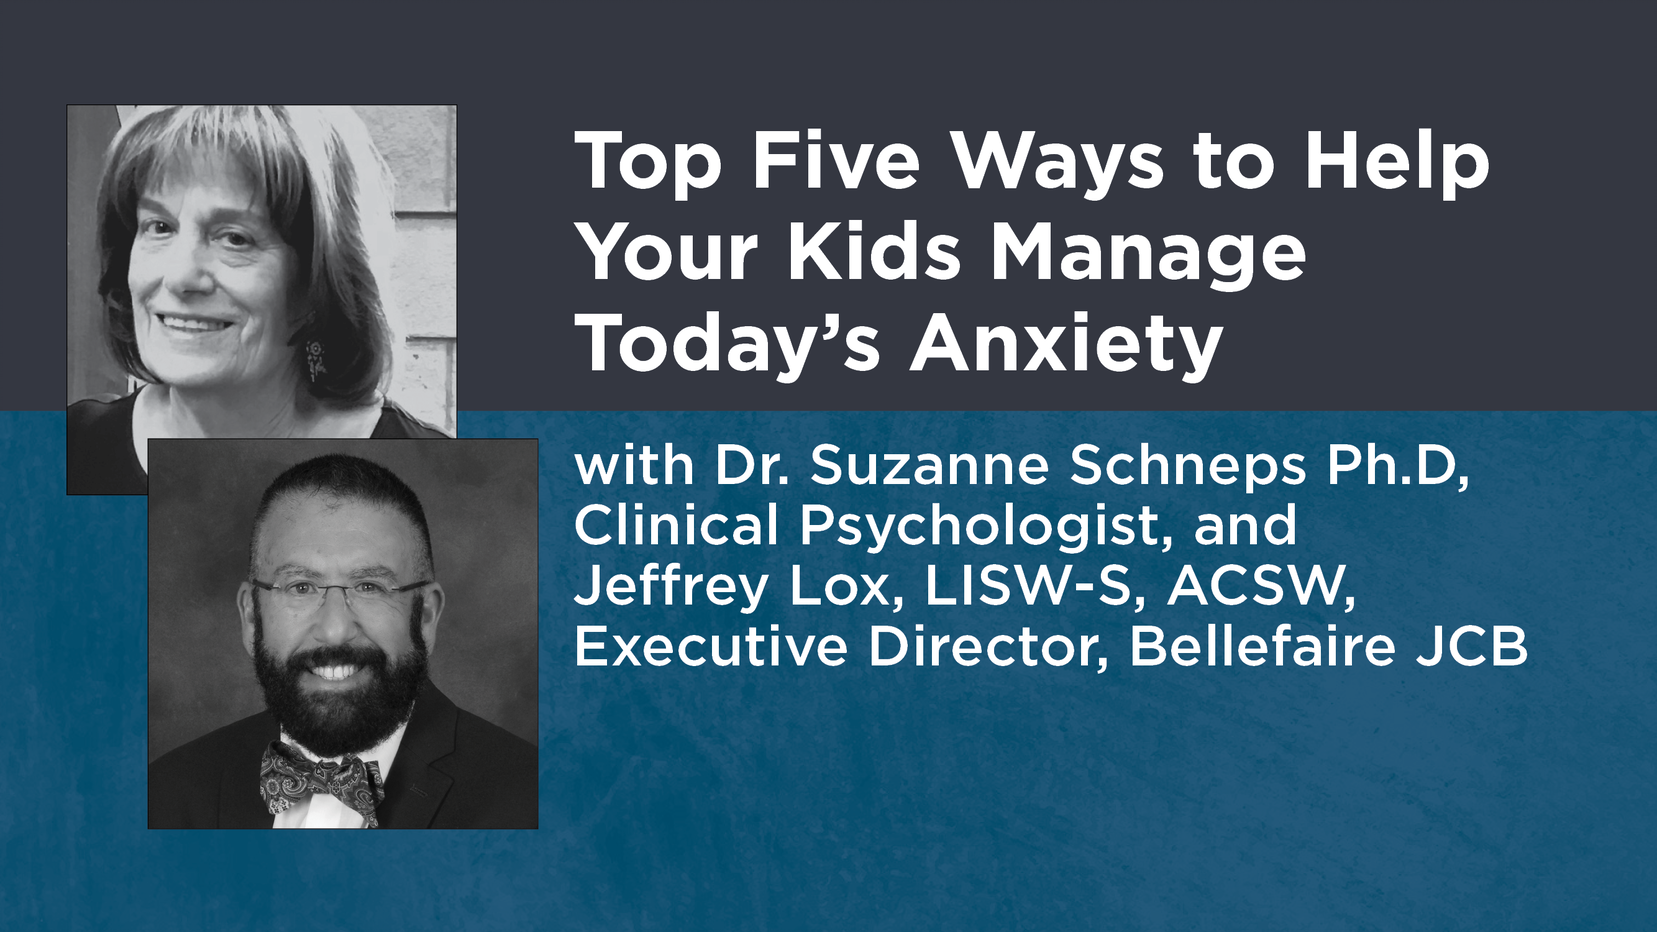 Top Five Ways to Help Your Kids Manage Today's Anxiety